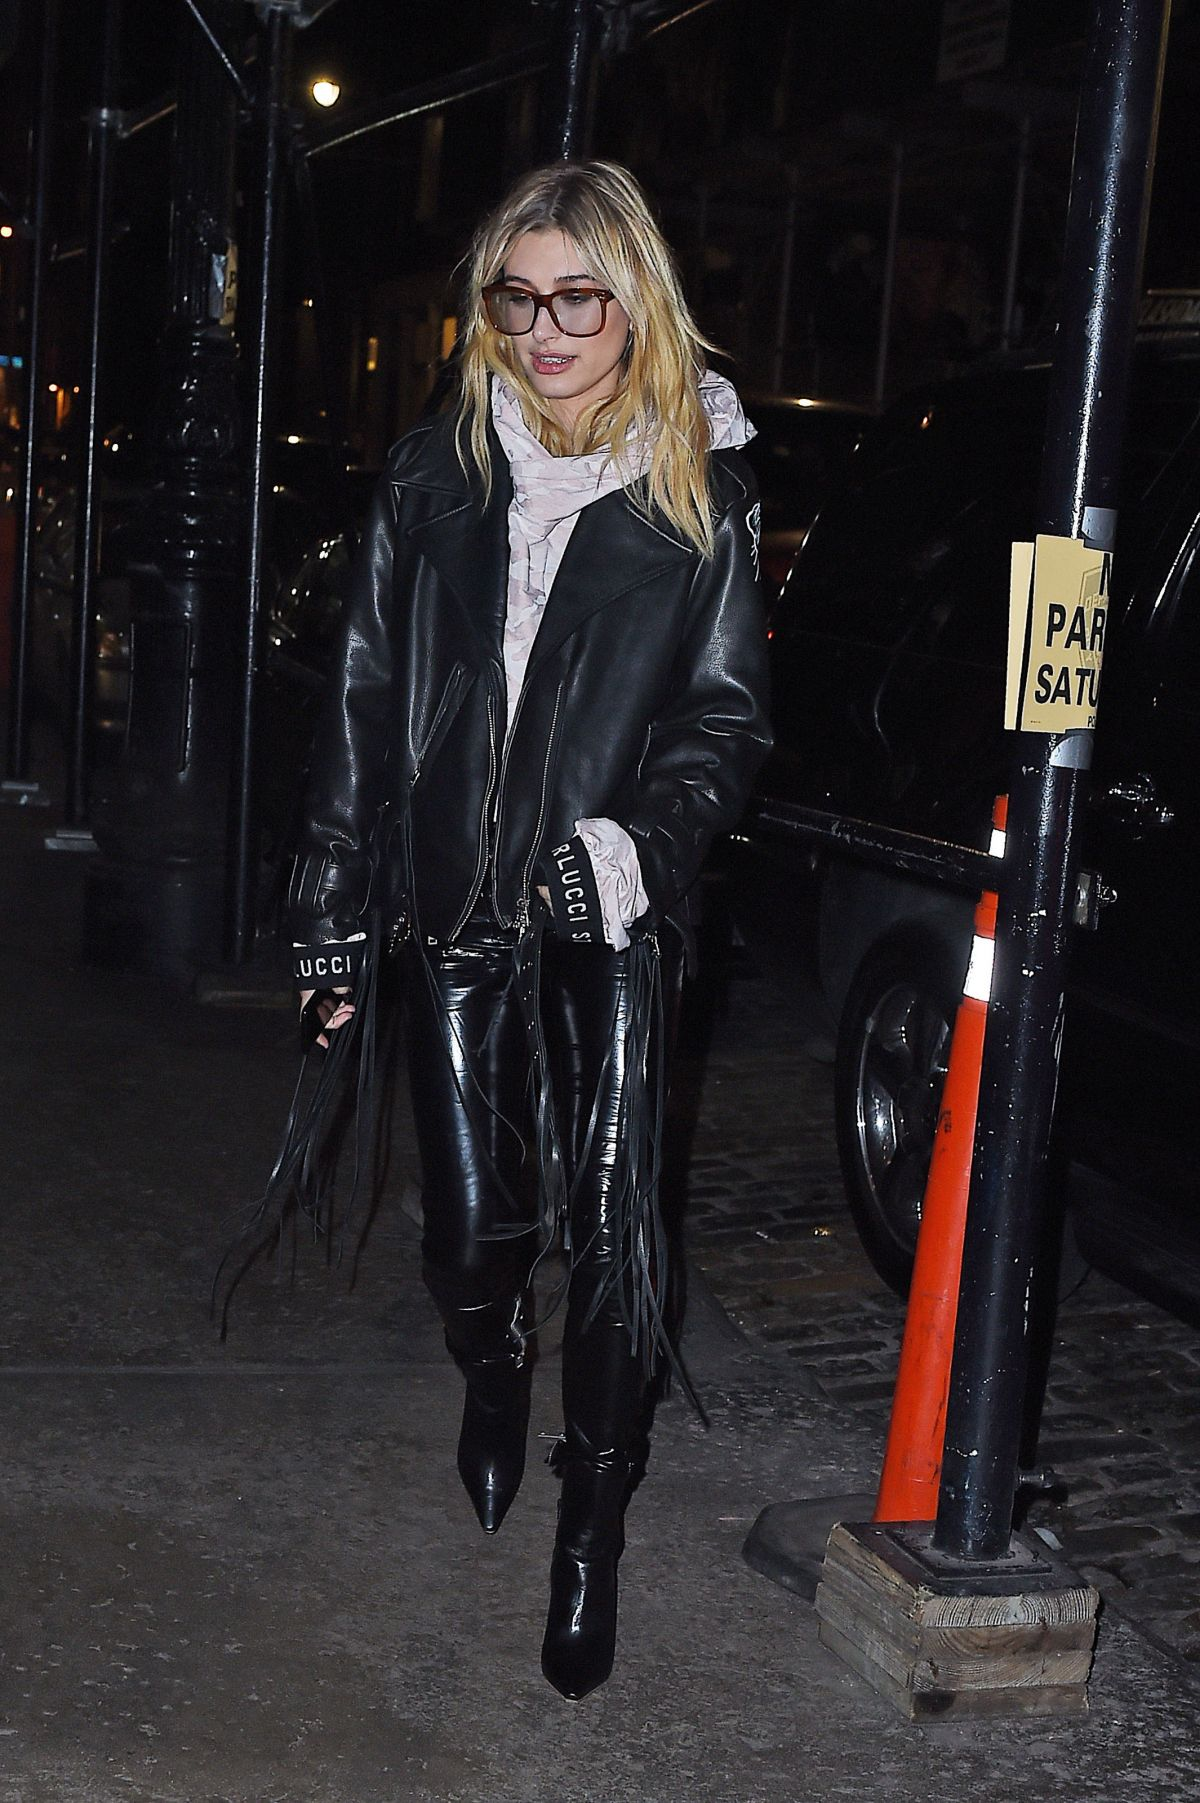 hailey baldwin out for dinner at mercer kitchen in new york 12 09